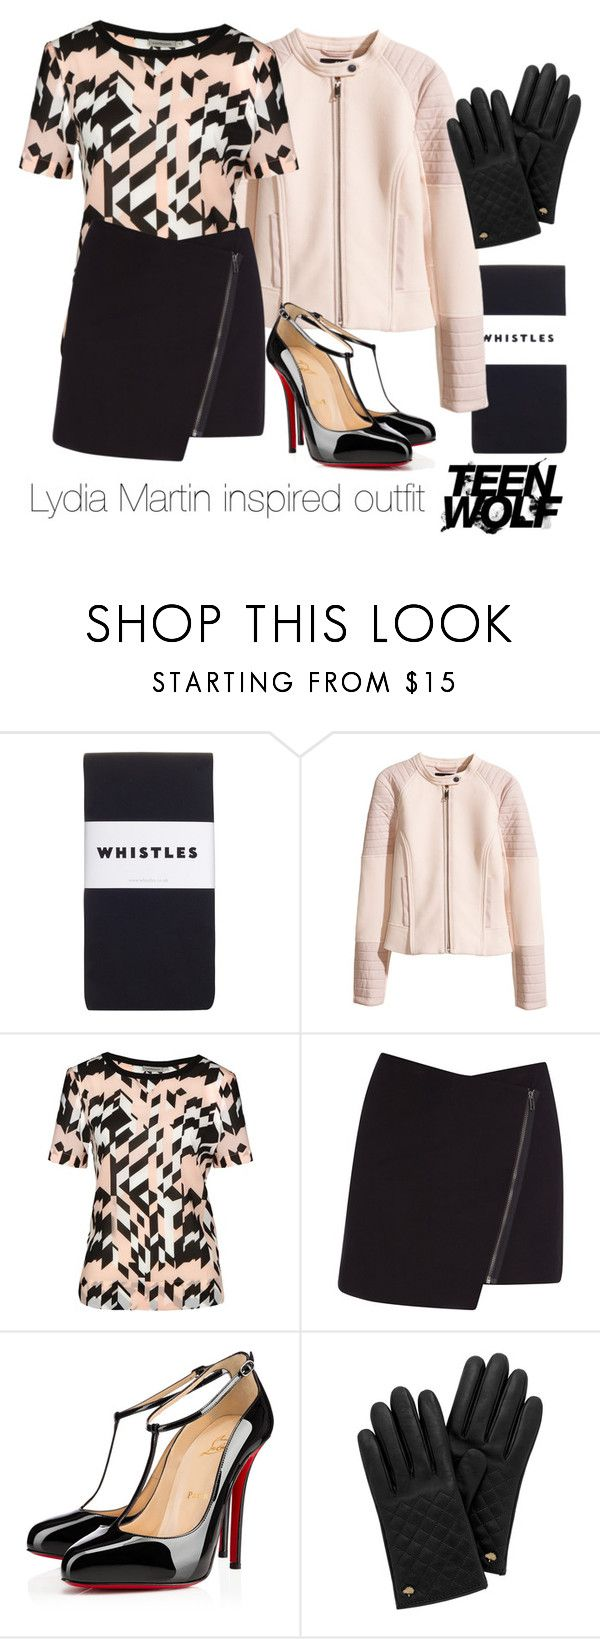 Lydia Martin inspired outfit/Teen Wolf by tvdsarahmichele on Polyvore featuring Calvin Klein, H&M, Helmut Lang, Whistles, Christian Louboutin and Mulberry